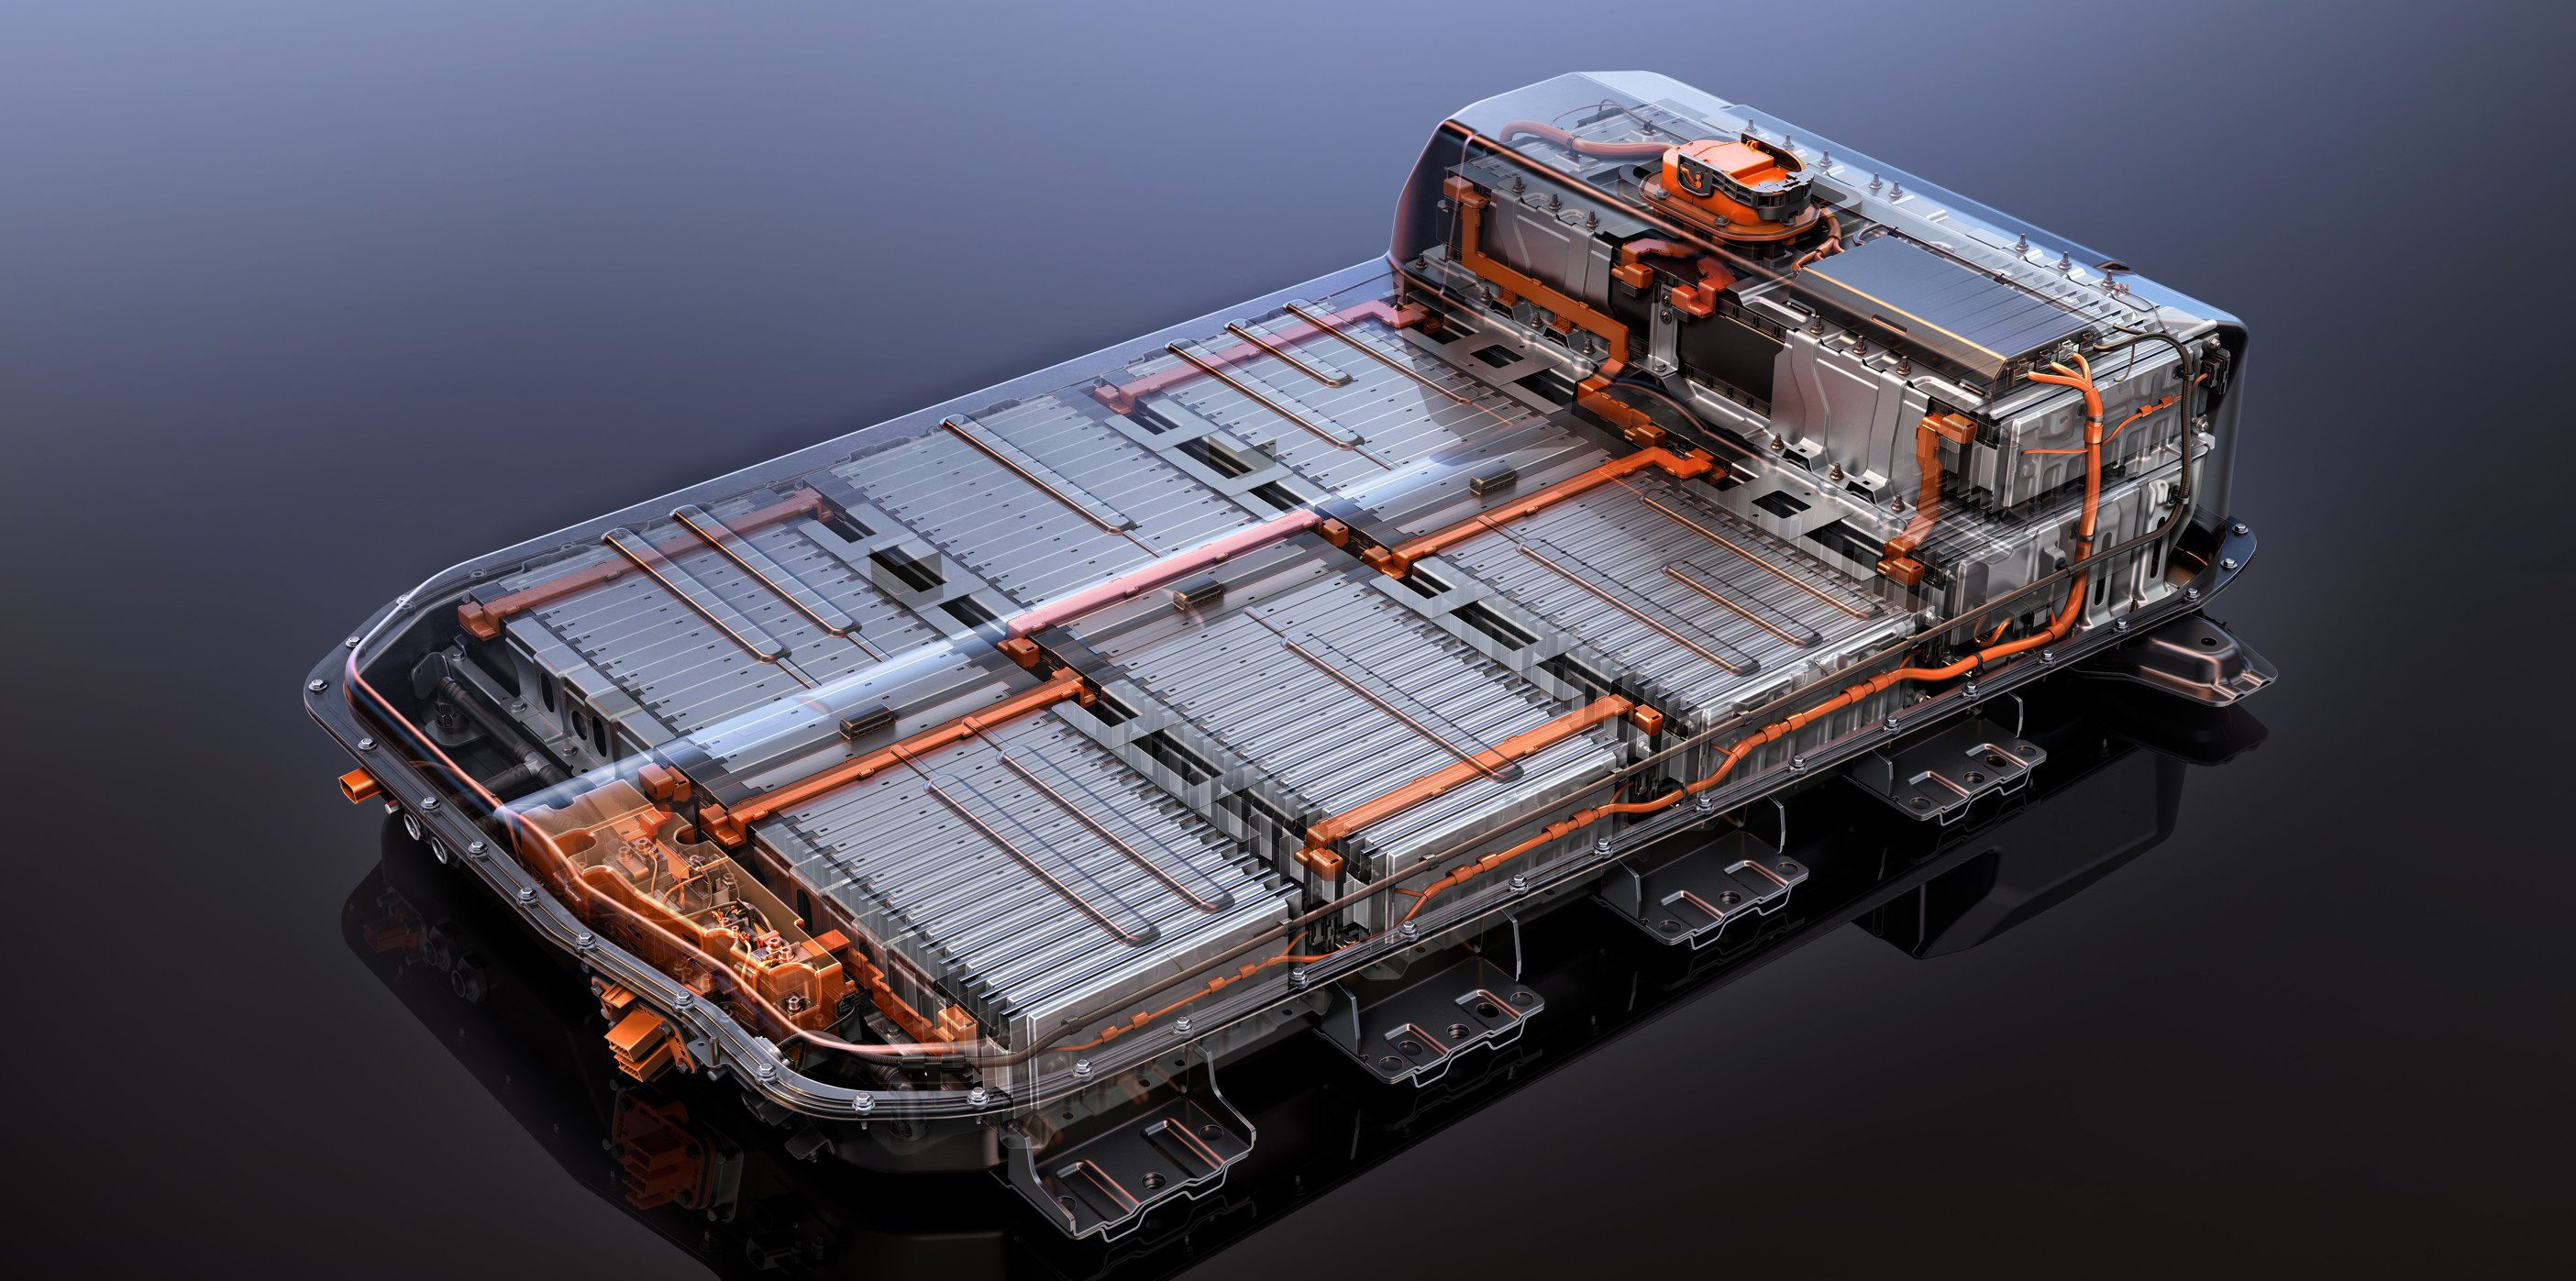 Gm And Honda Are Partnering To Build Next Gen Batteries For Electric Vehicles